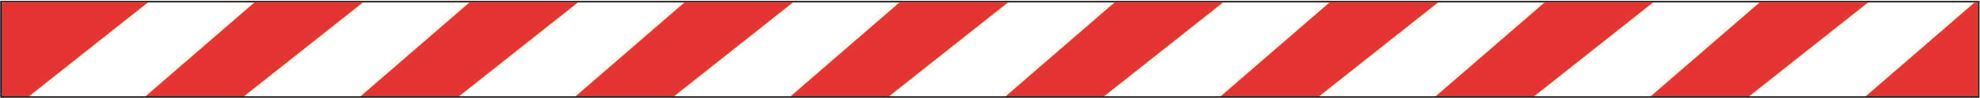 Barrier Tapes Non-adhesive - Red & White